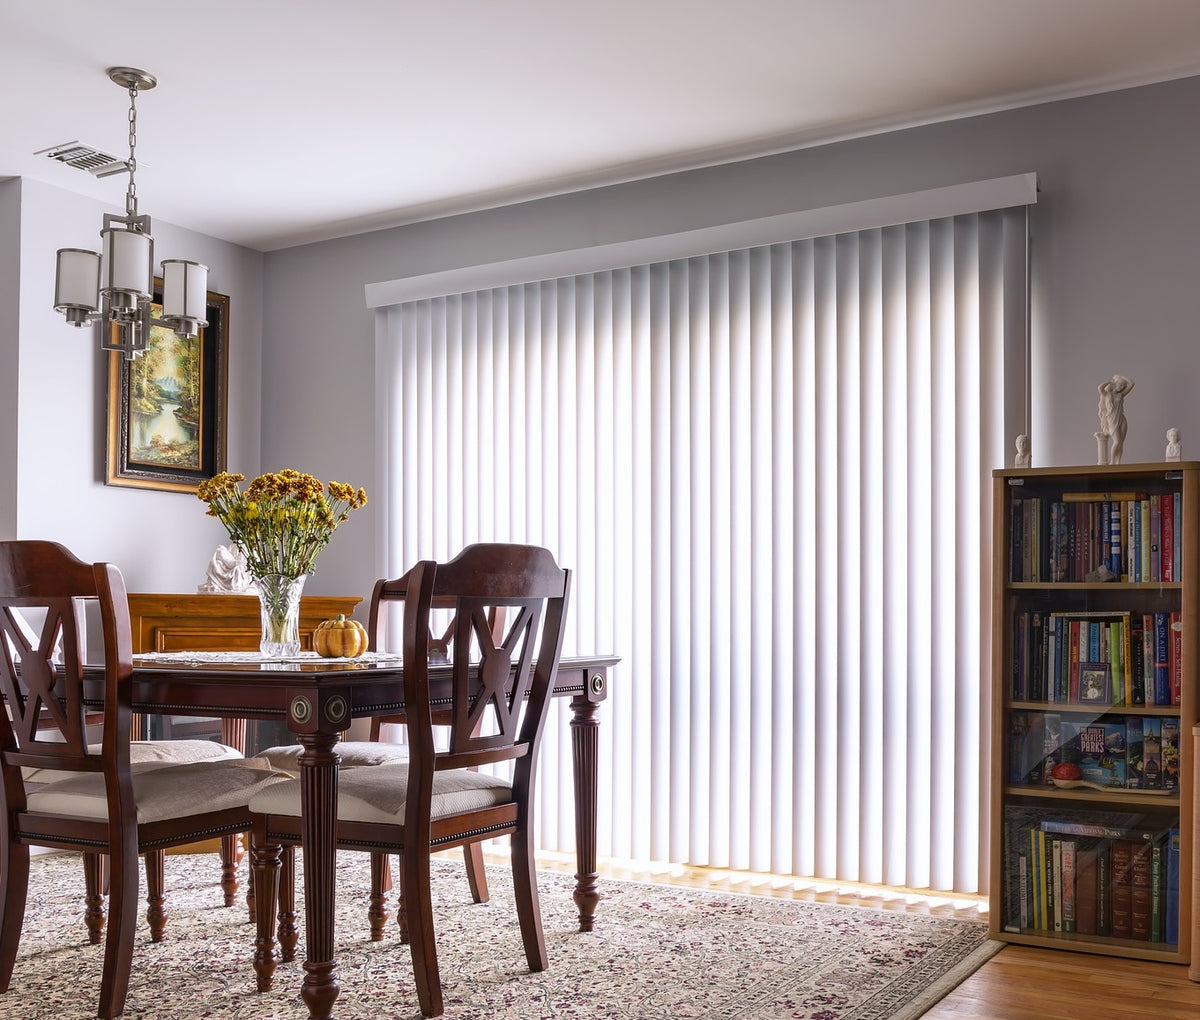 Vertical blinds and furniture and rug